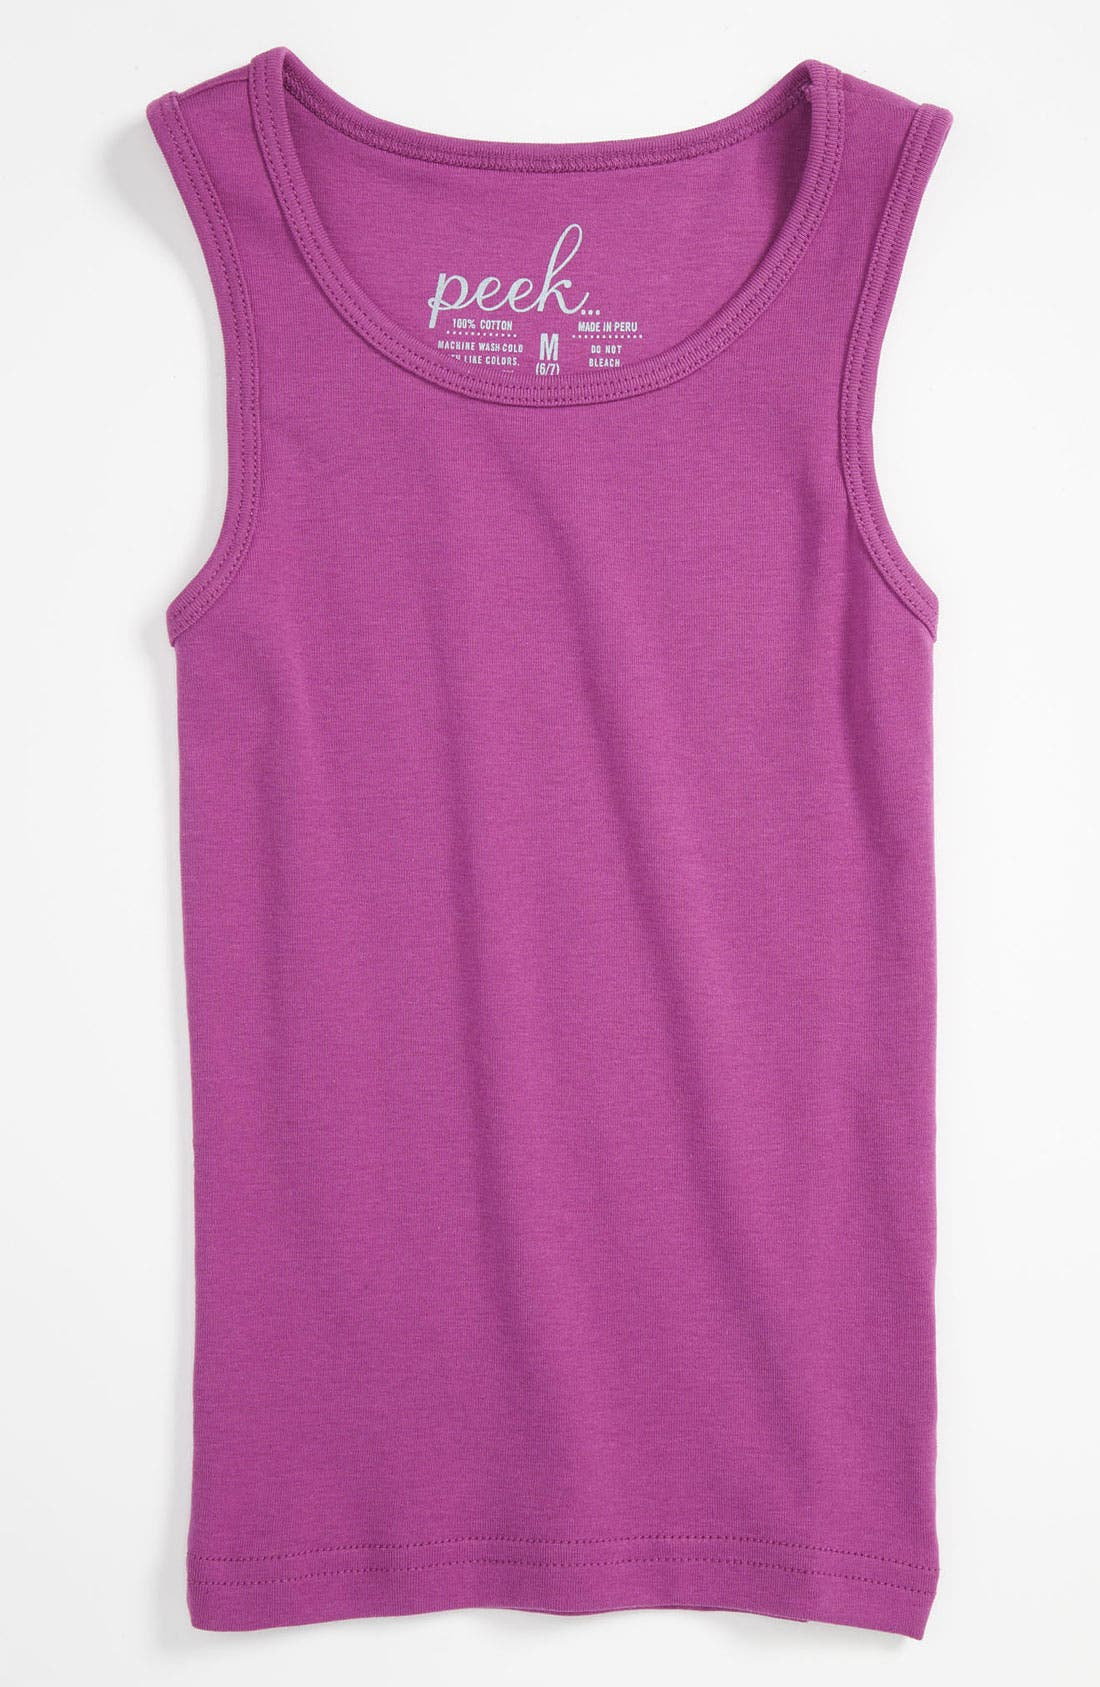 Main Image - Peek 'Daisy' Tank Top (Toddler, Little Girls & Big Girls)